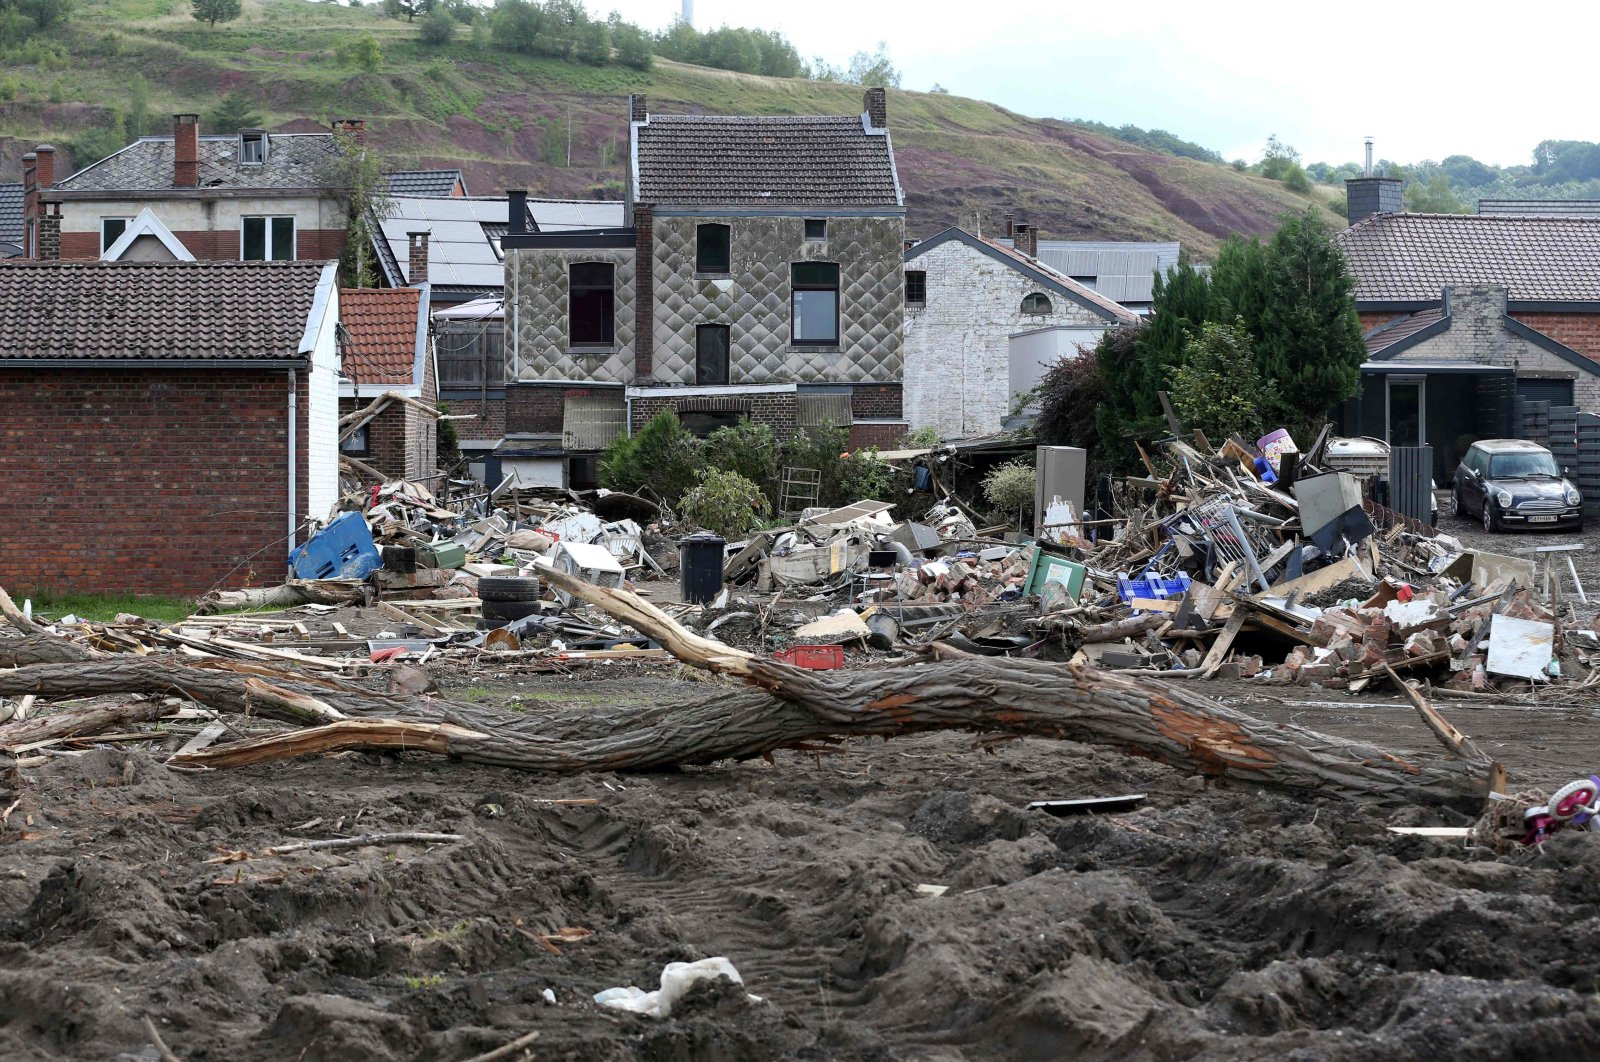 Piles of rubble collected from the flooded areas in the Belgian town of Trooz, a week after heavy rains and floods lashed western Europe, July 26, 2021. (AFP Photo)